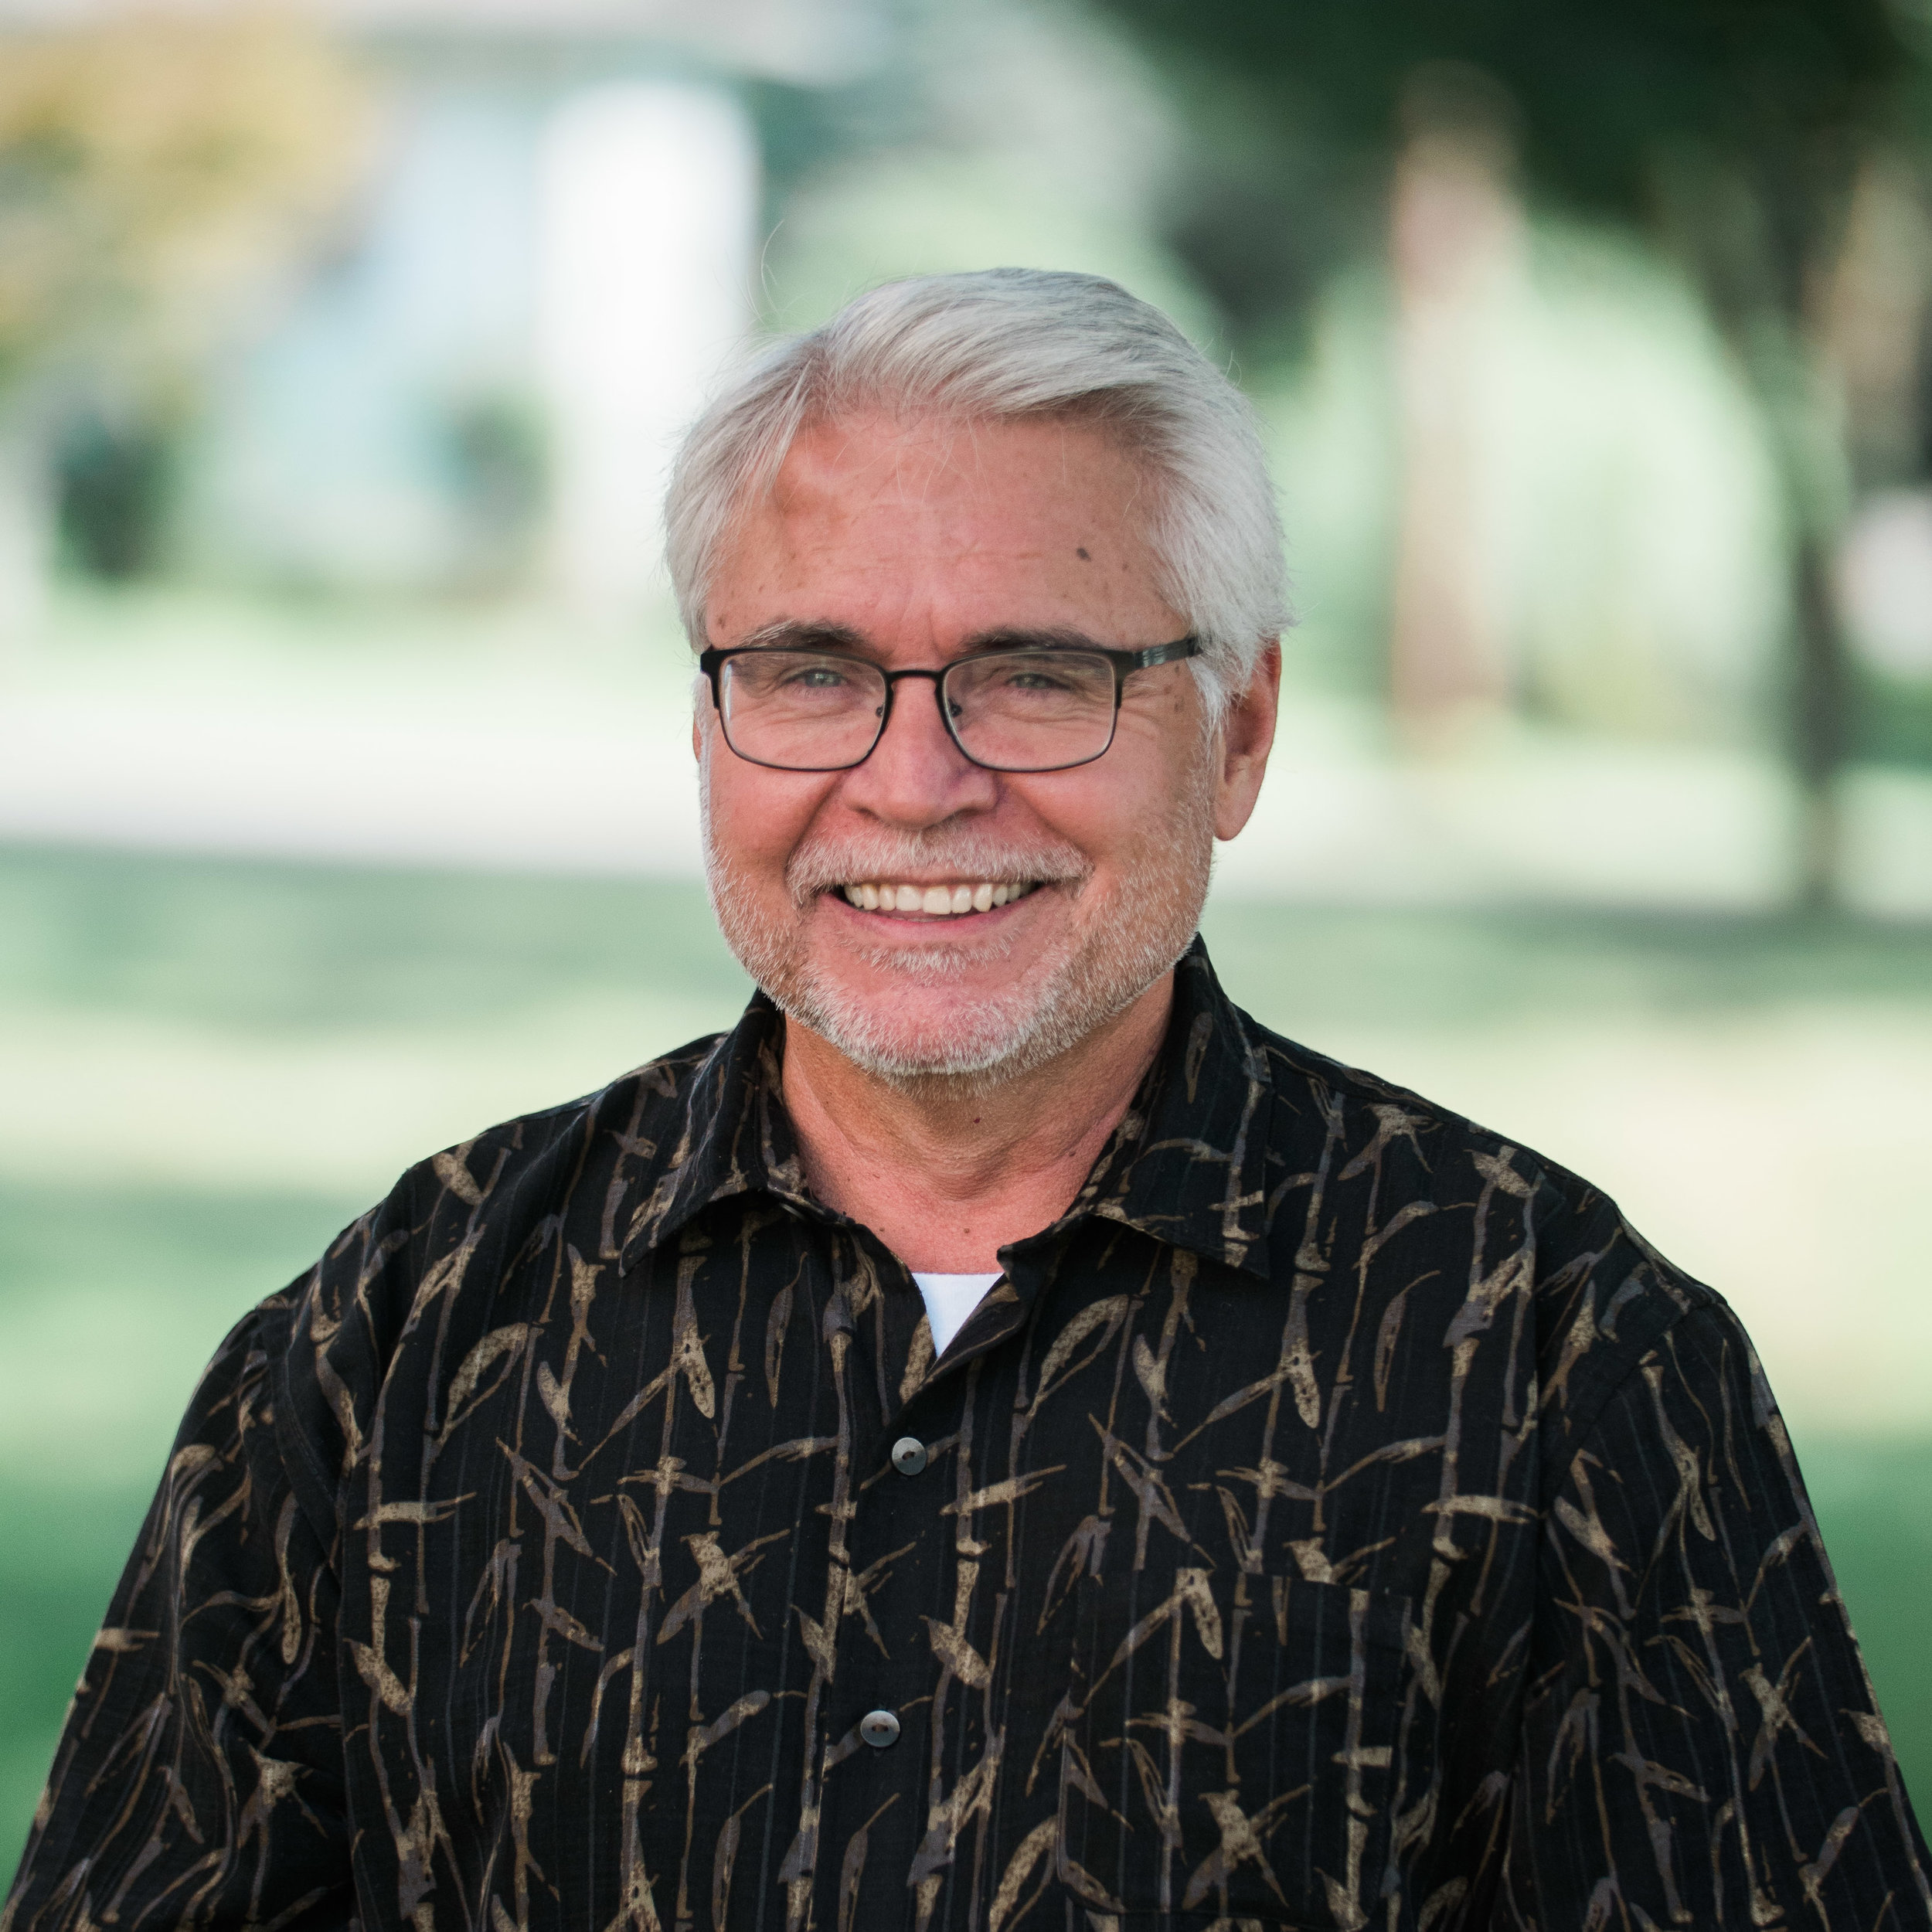 Rick Lowhorn - Missions Pastor